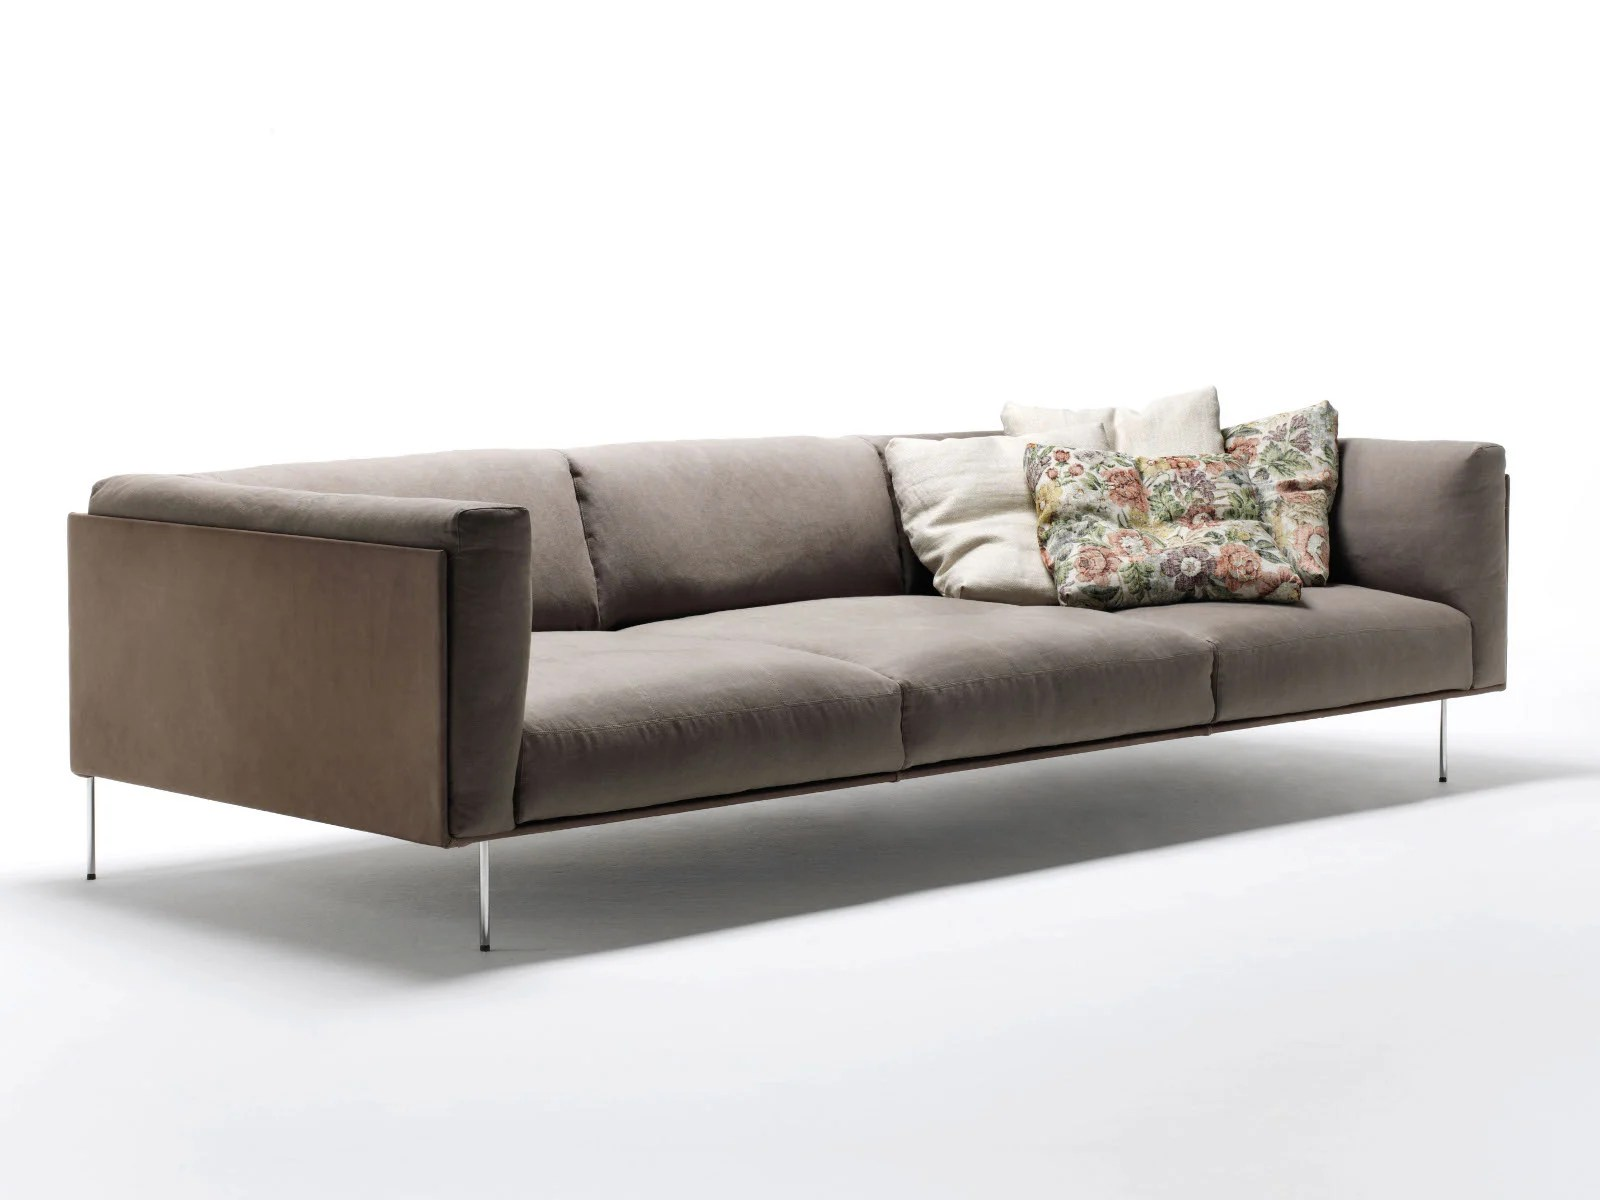 Canapé Sofa Rod Sofa By Living Divani Design Piero Lissoni